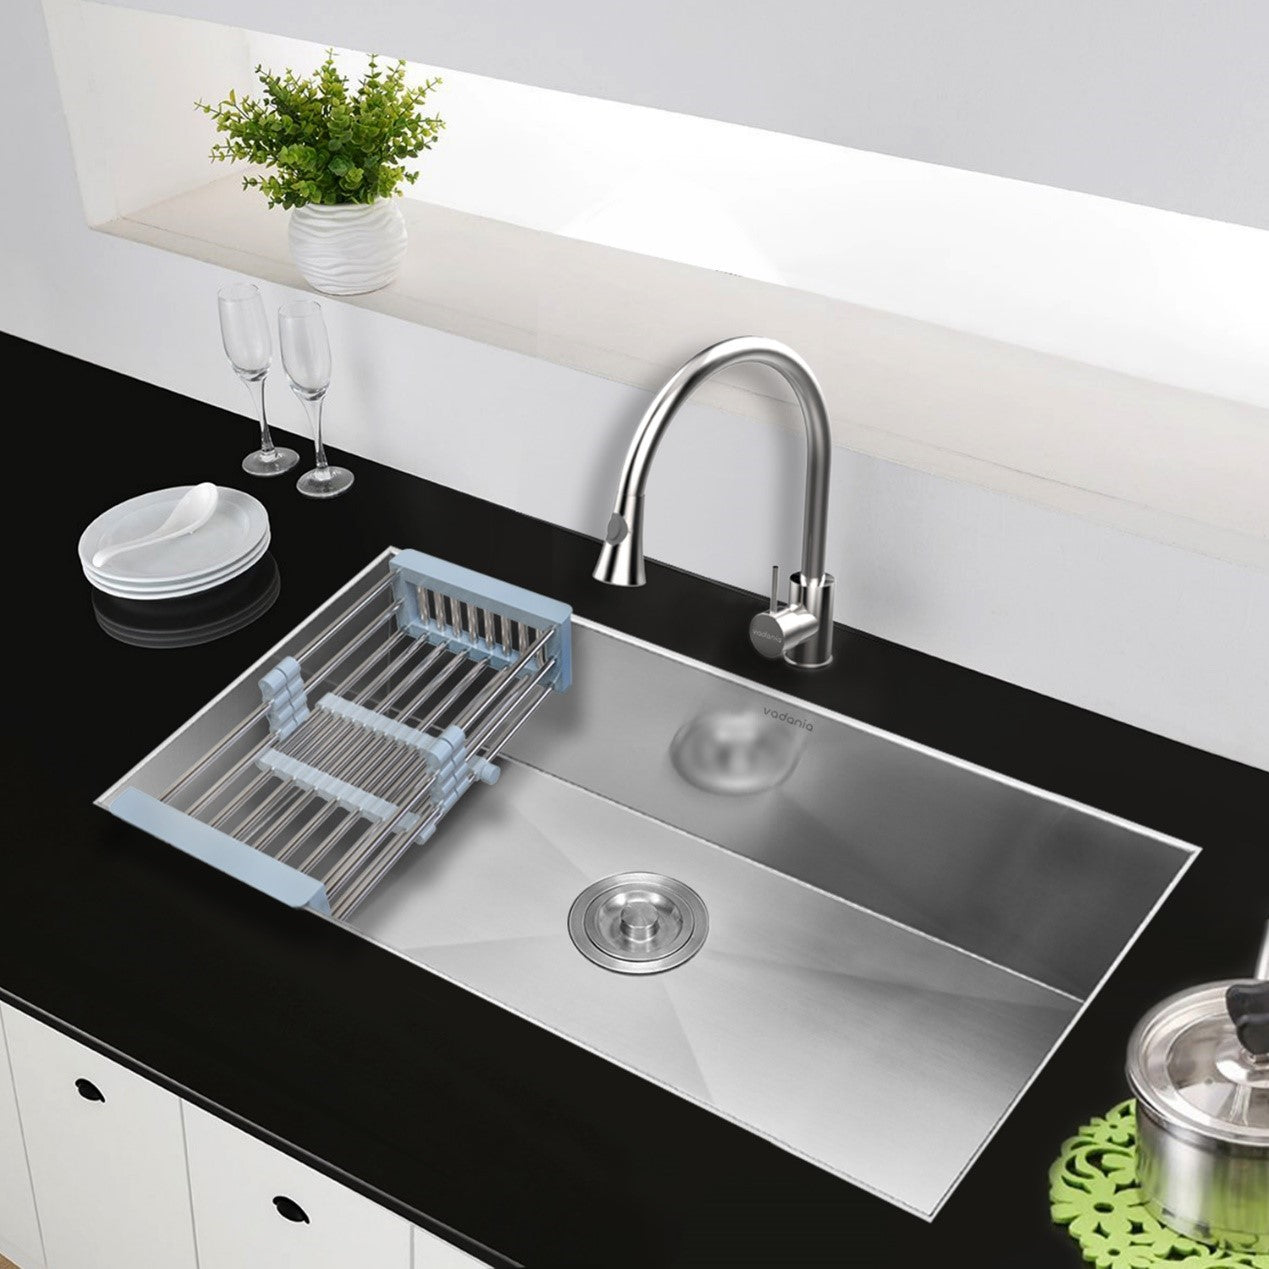 How to select a good sink?(1) -  Sink material | VADANIA kitchen sink